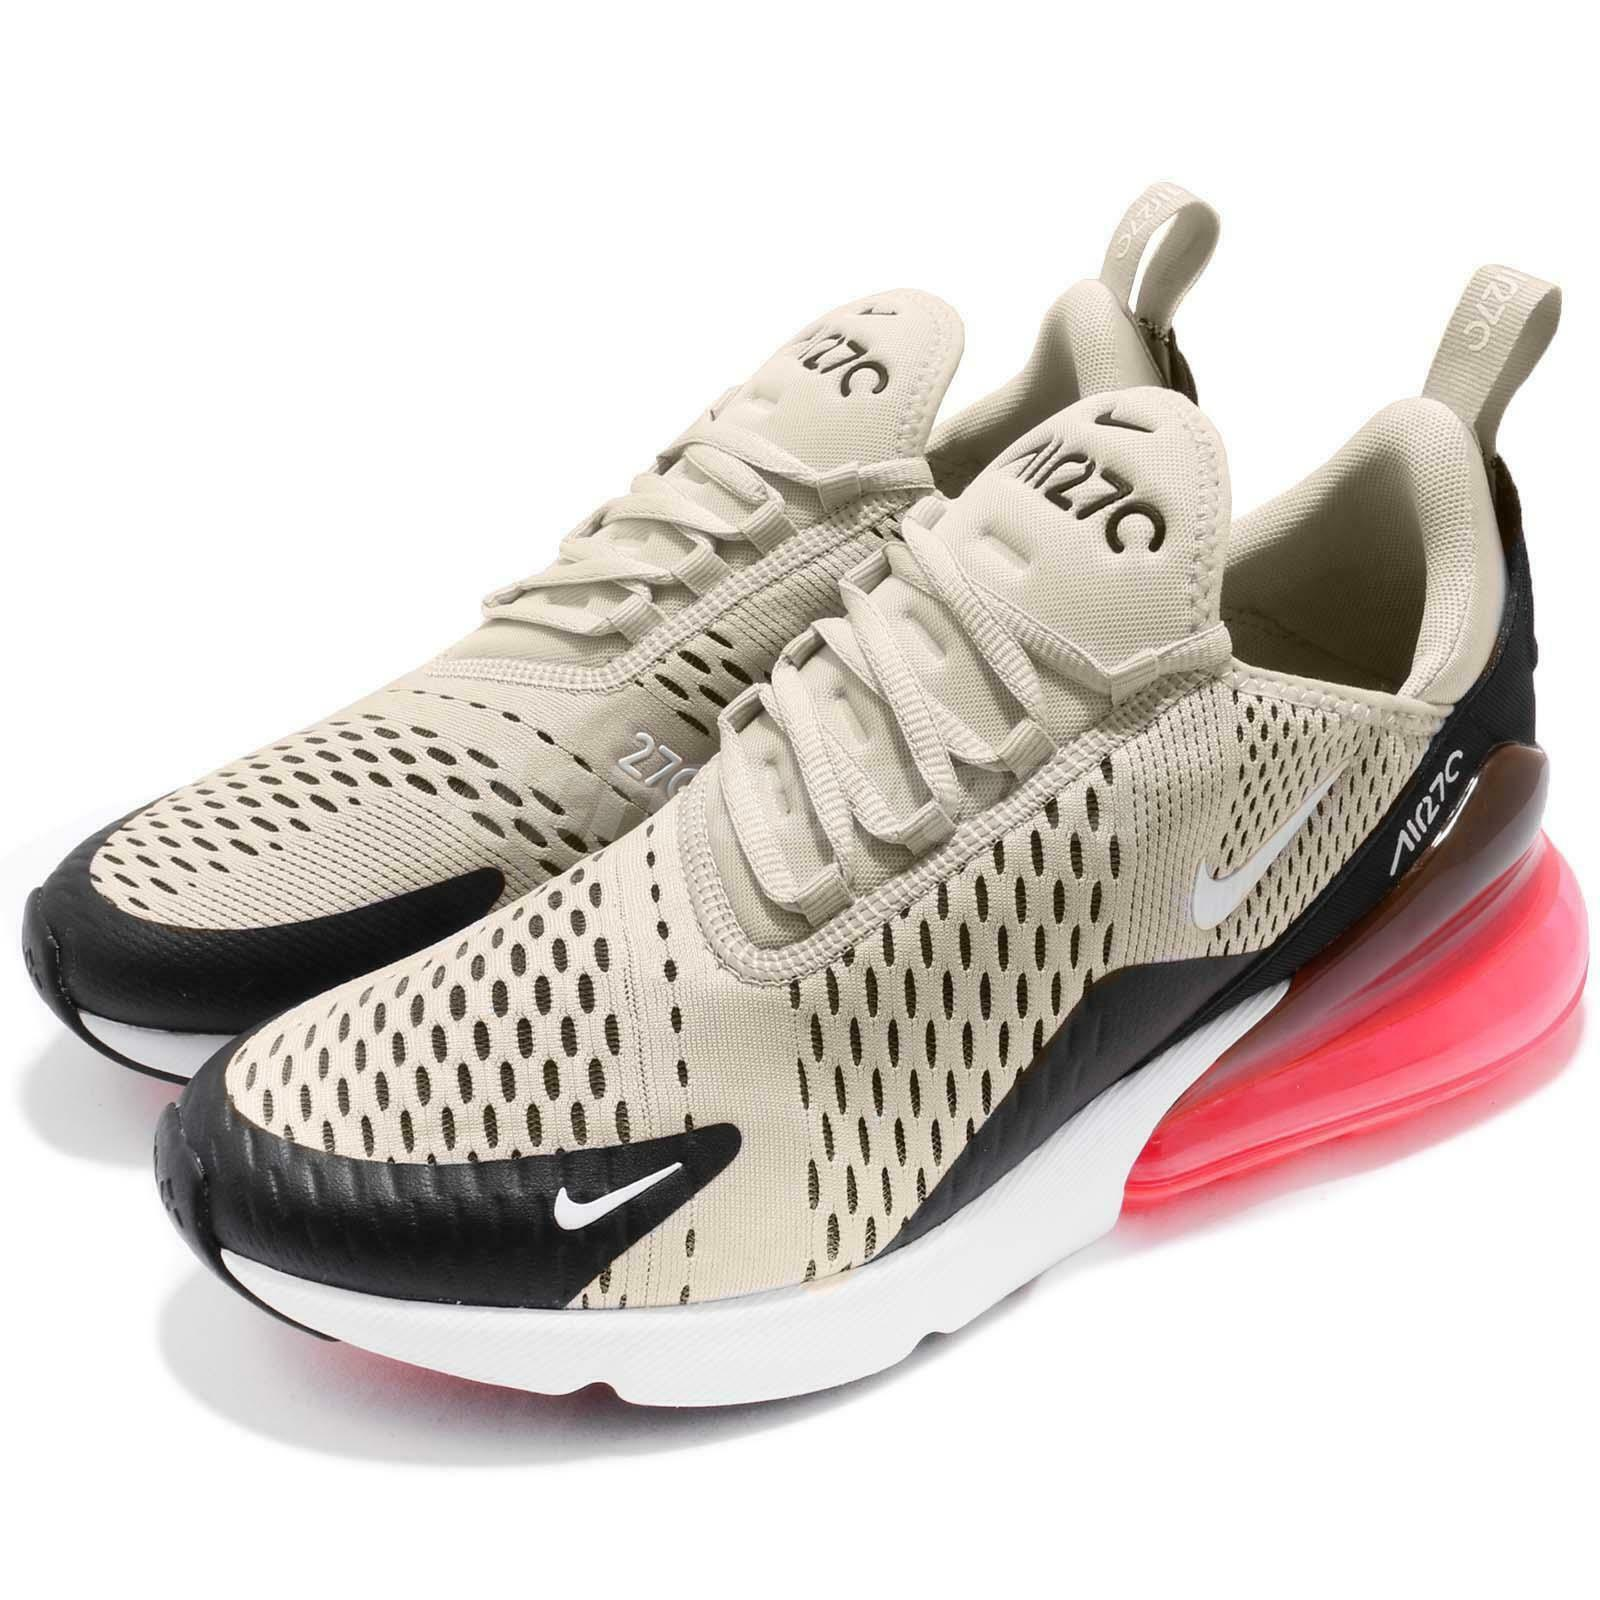 air max 270 hot punch Weiß